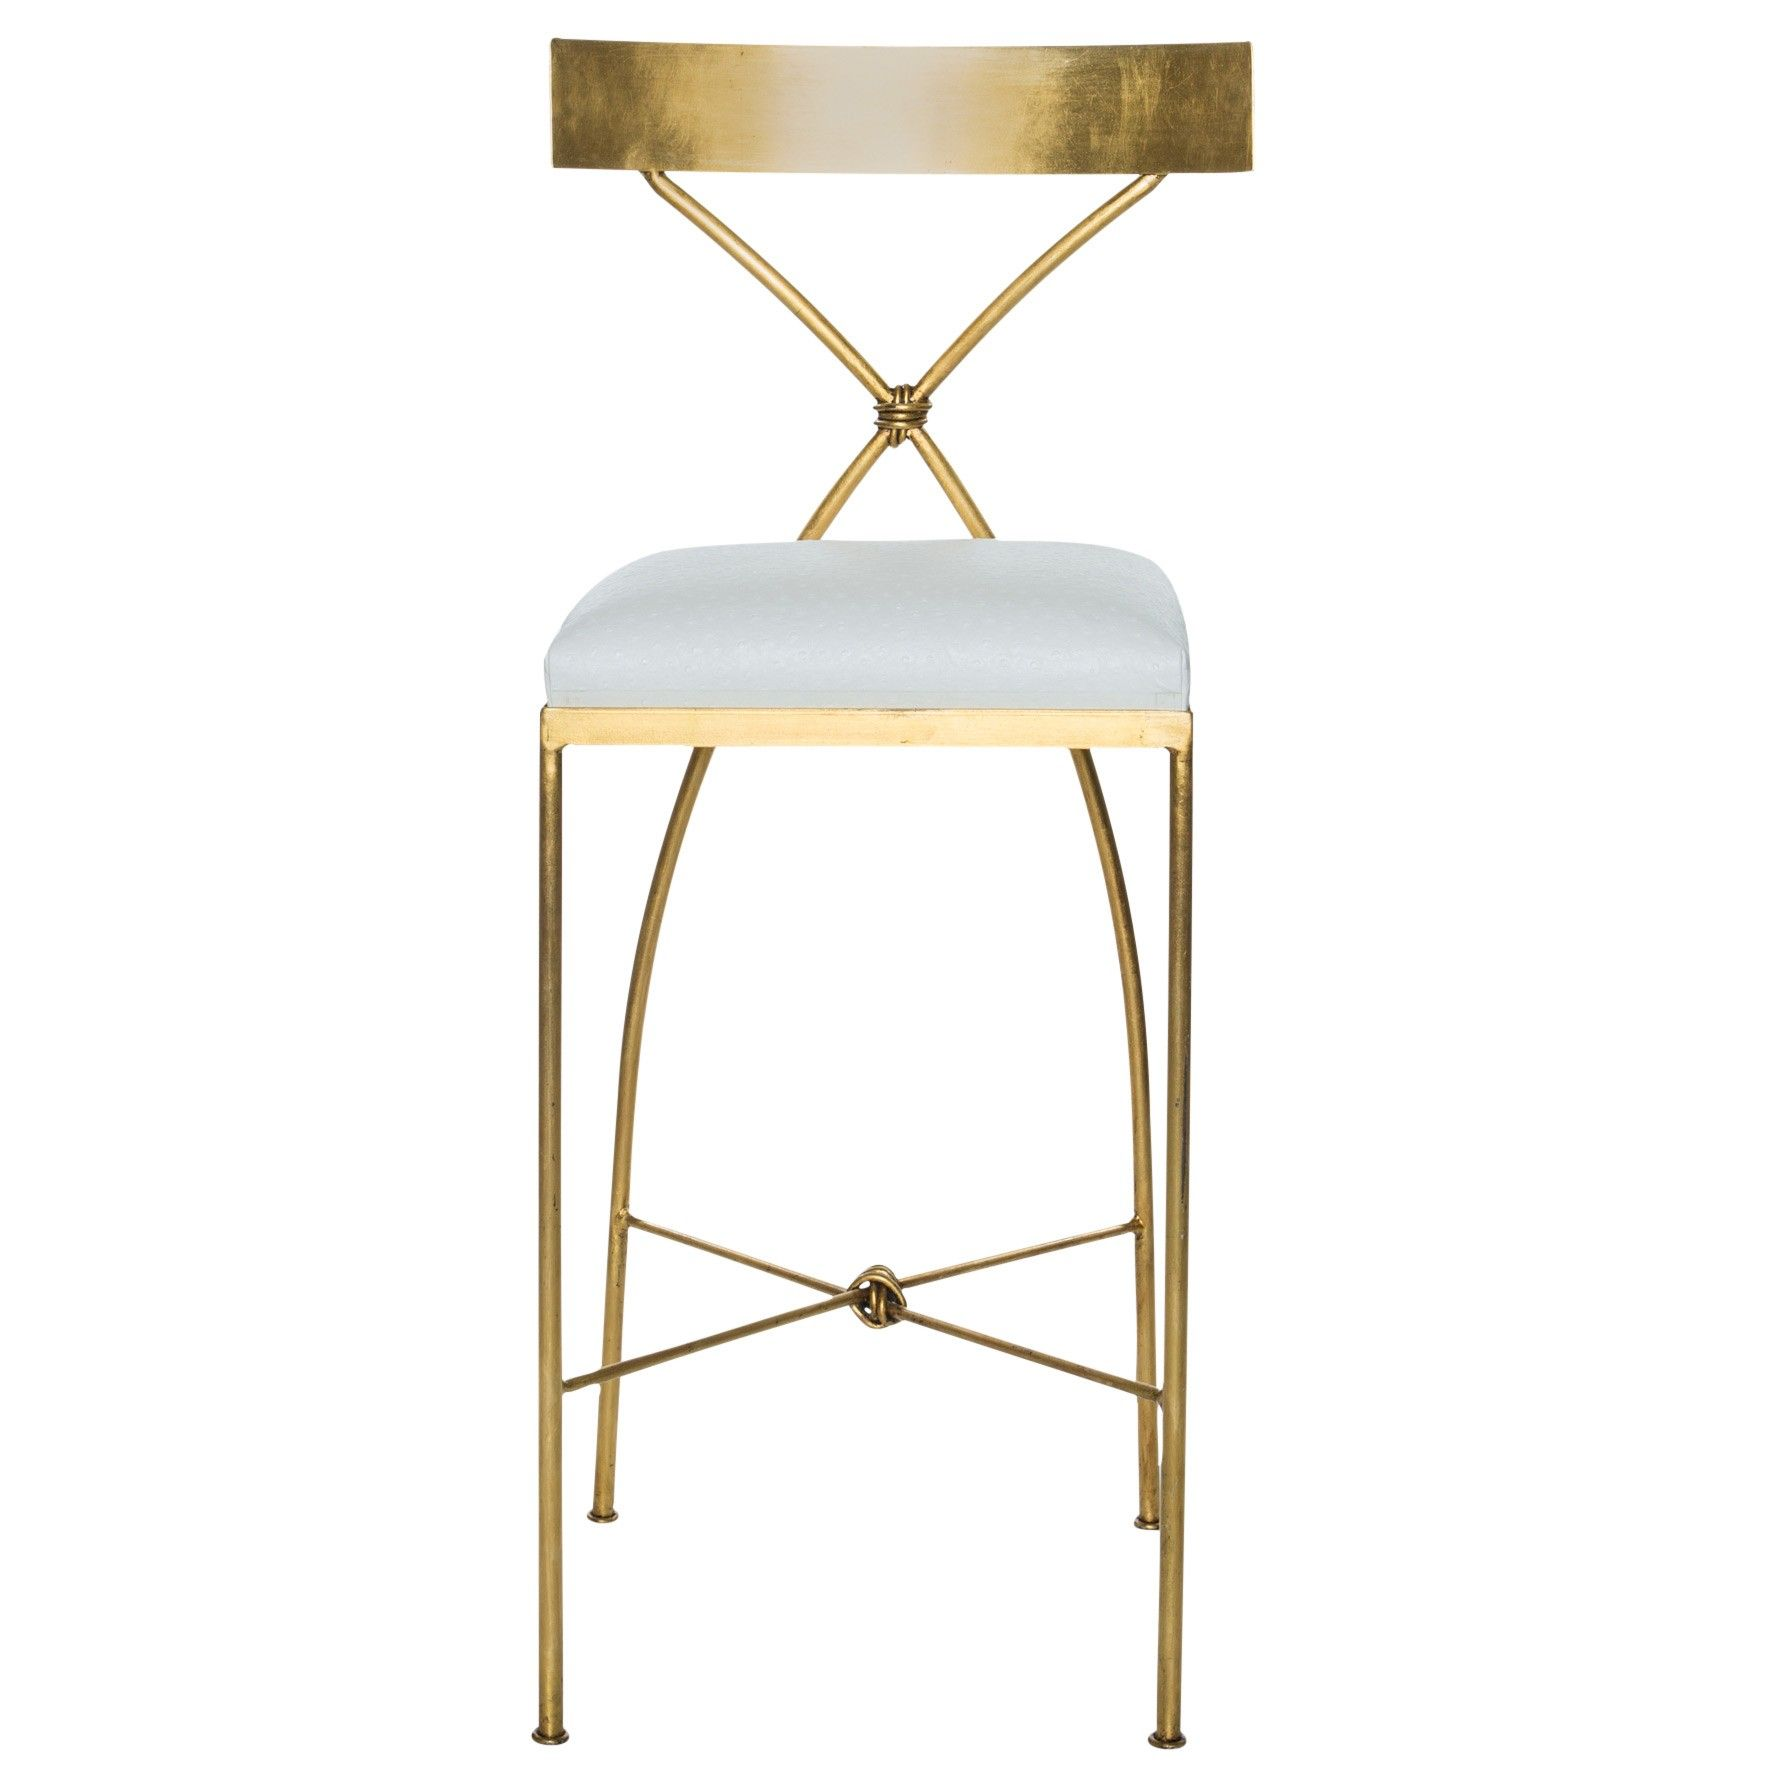 The Ivey Bar Stool has elegantly sloping legs and a slightly curved